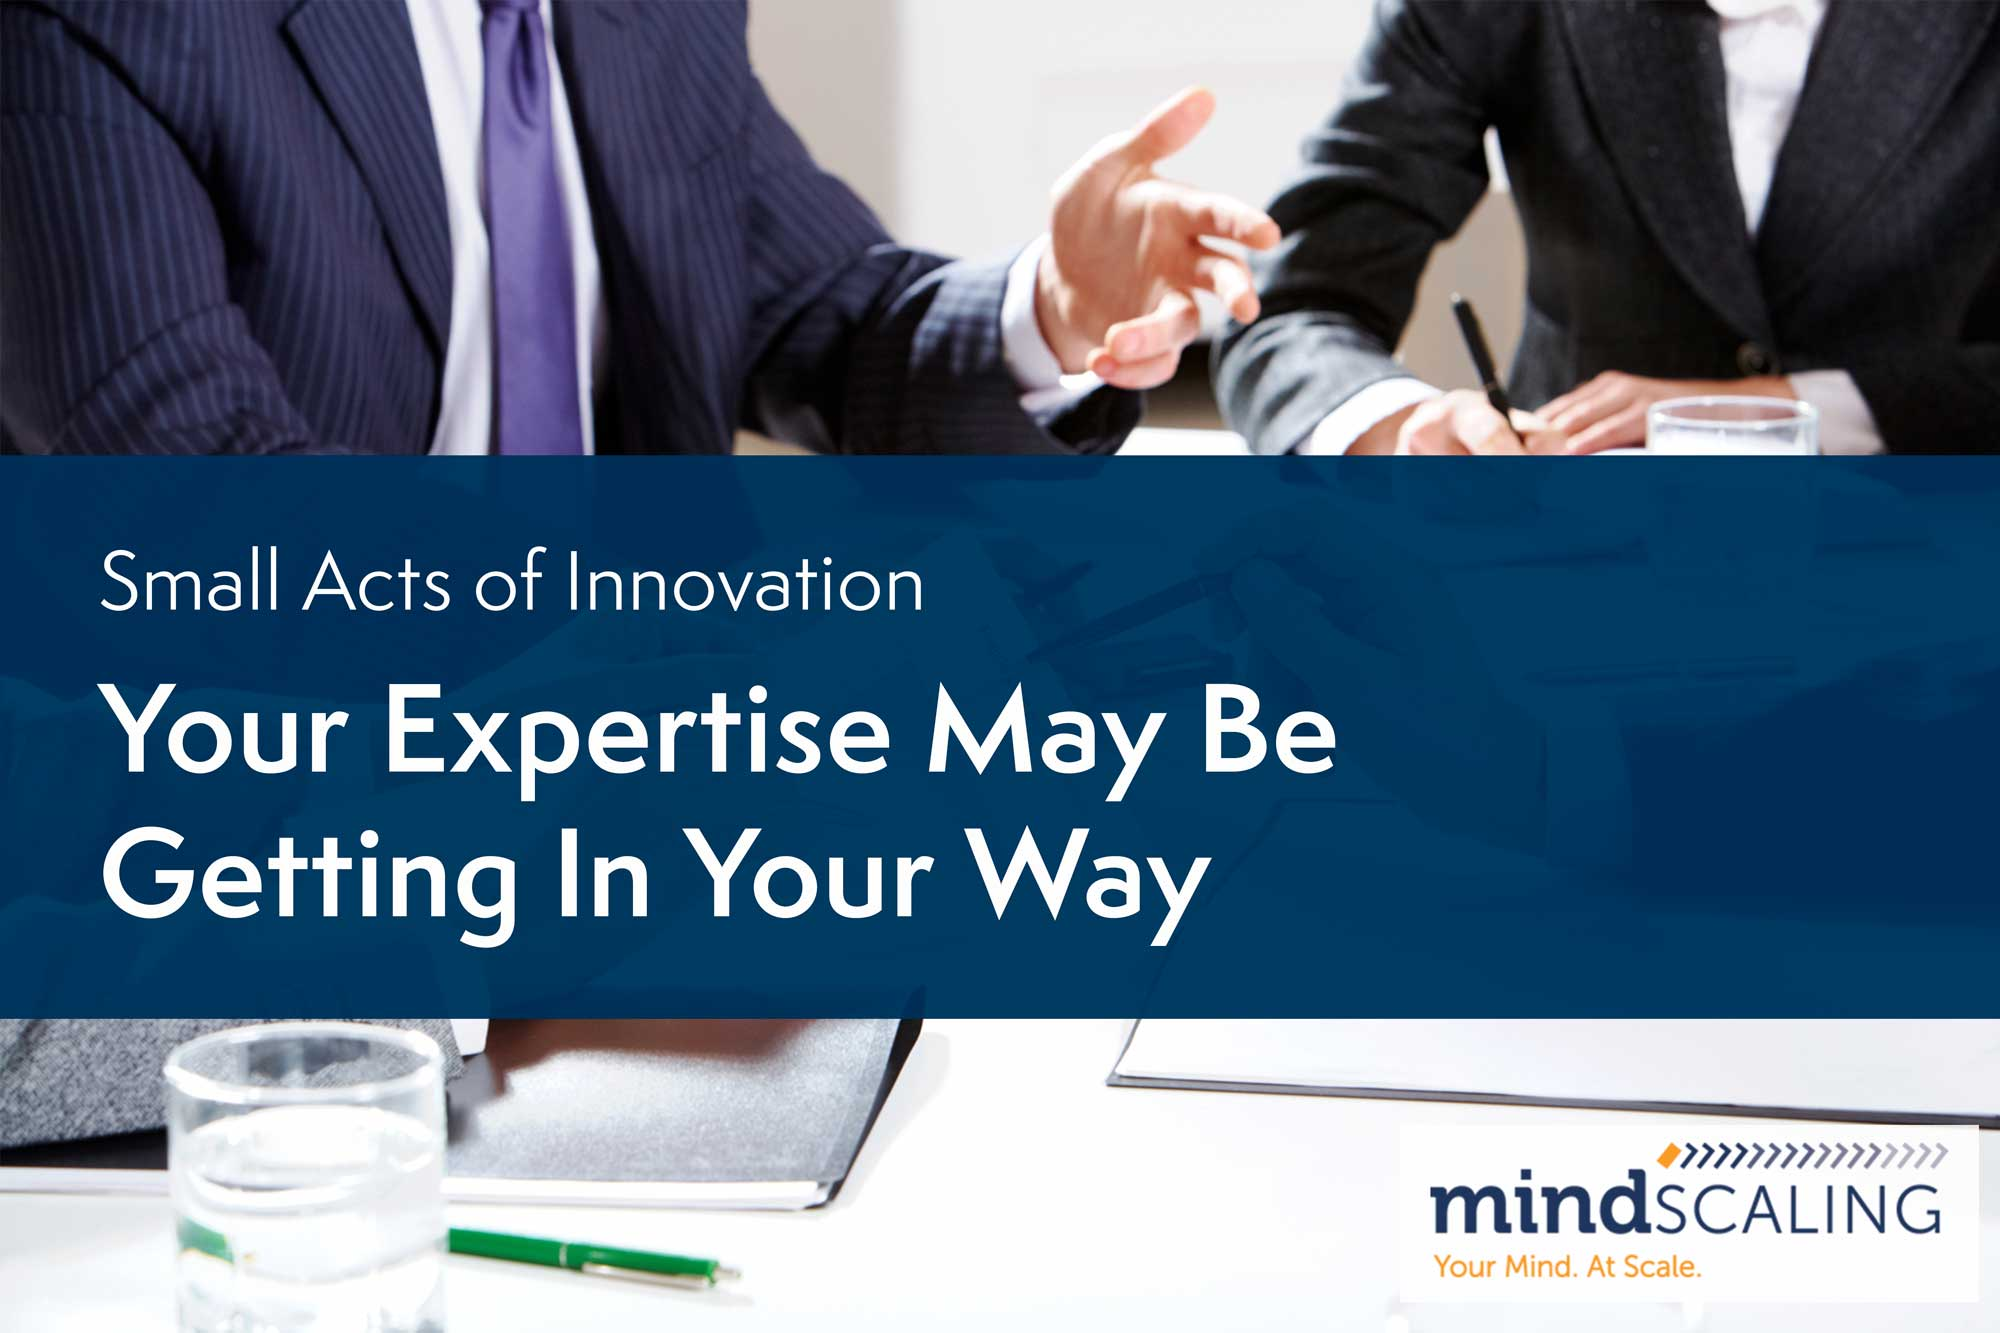 Small Acts of Innovation: Your Expertise May Be Getting in Your Way